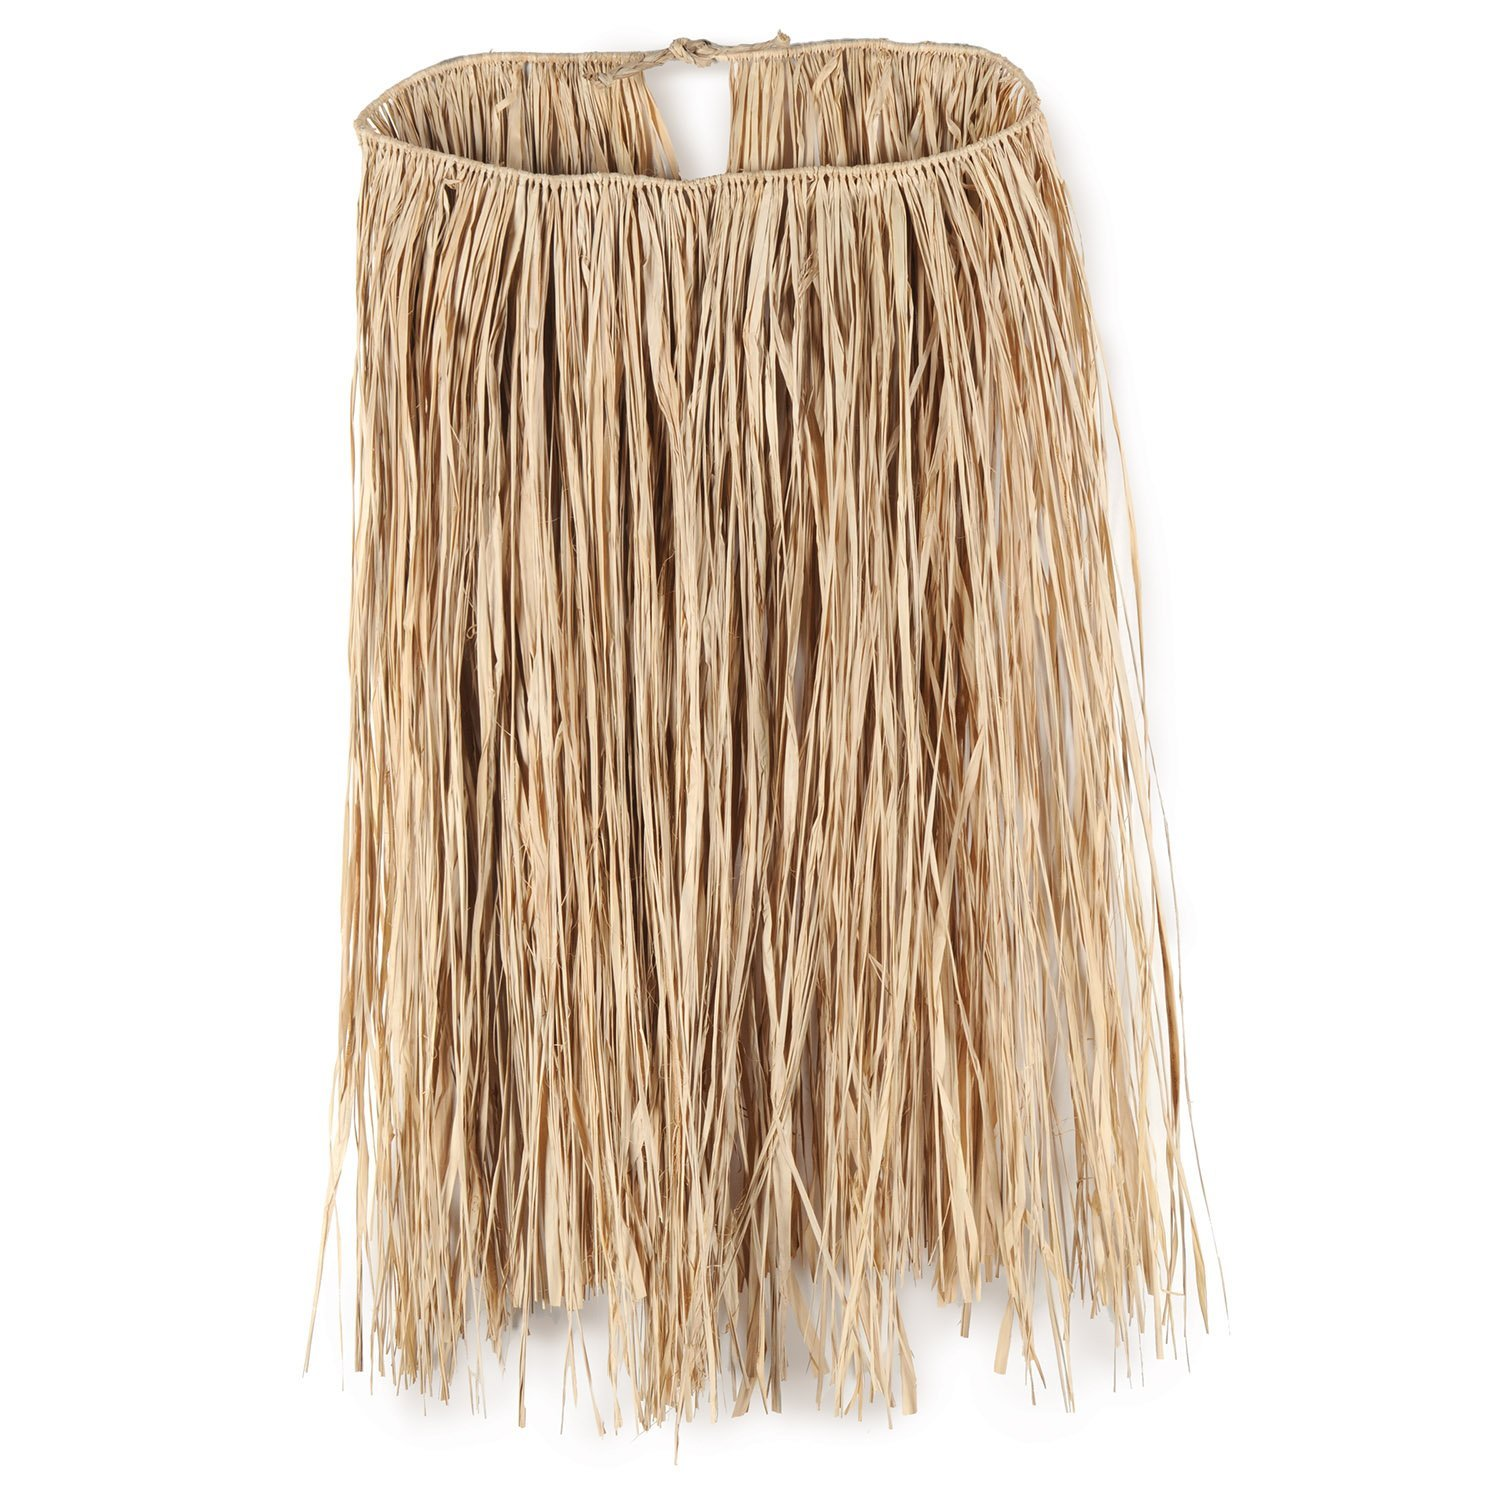 King Size Raffia Hula Skirt (natural) Party Accessory (1 count) (1/Pkg)